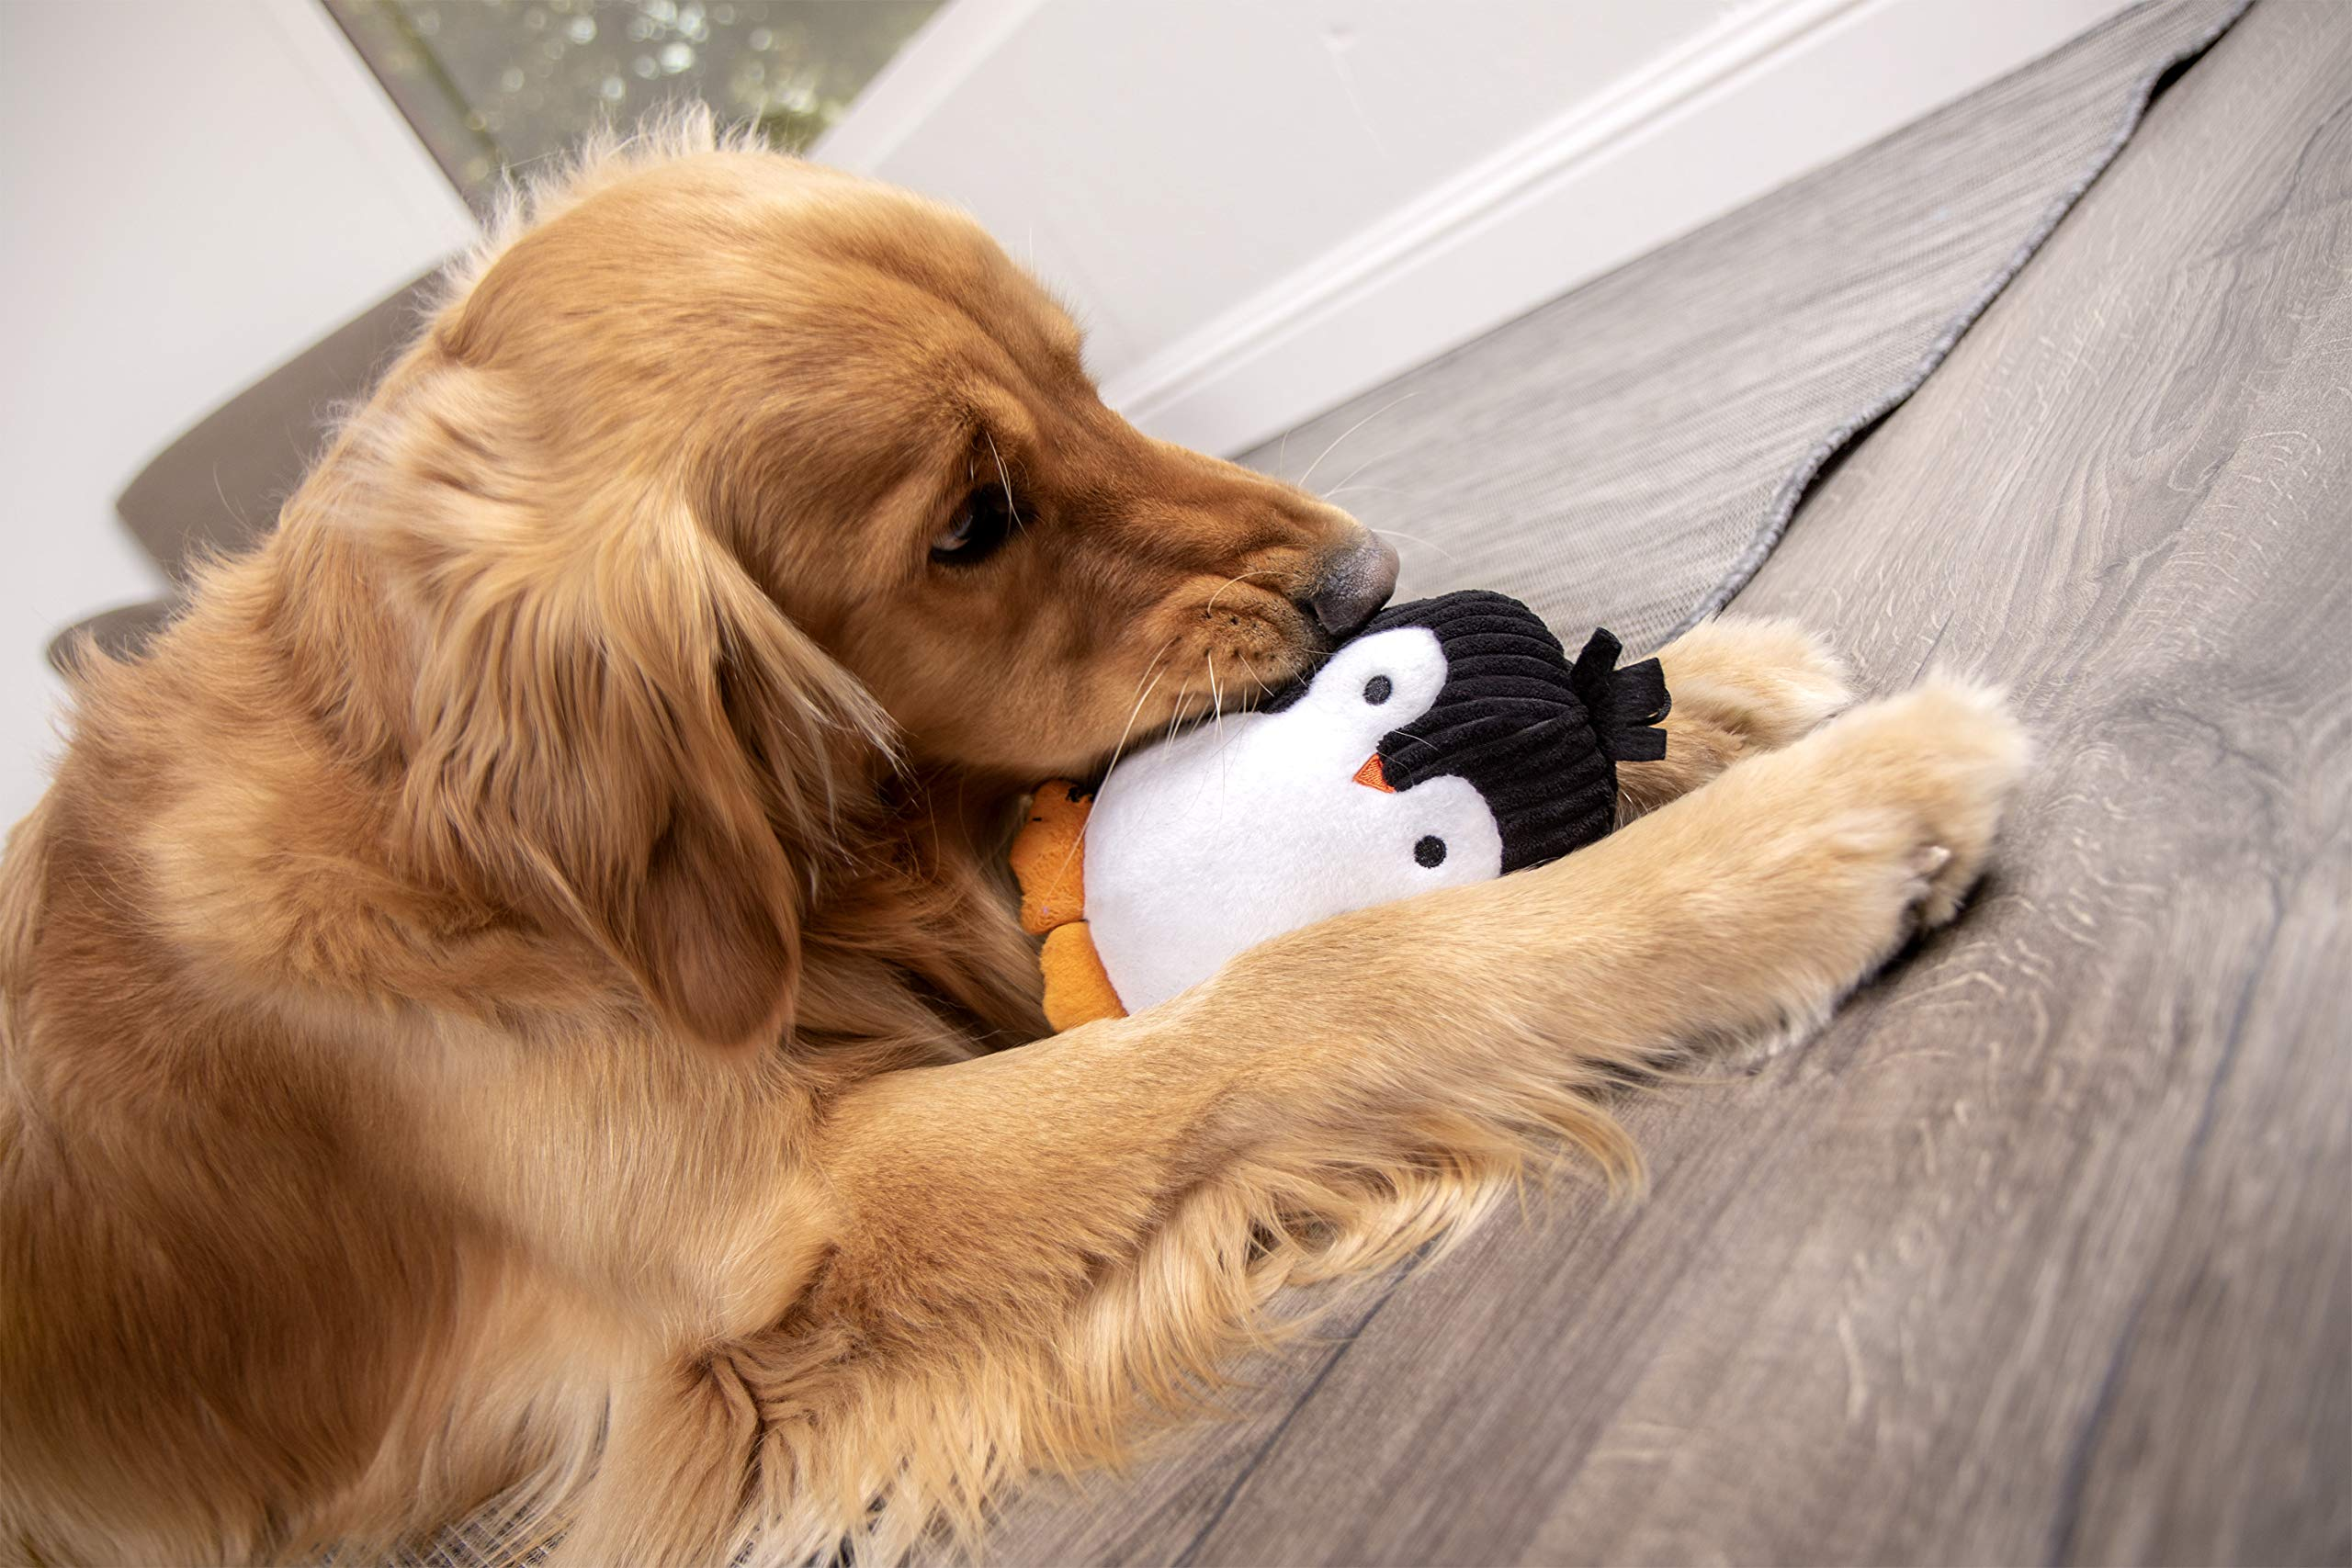 TrustyPup-Penquin-Plush-Dog-Toy-with-Silent-Squeaker